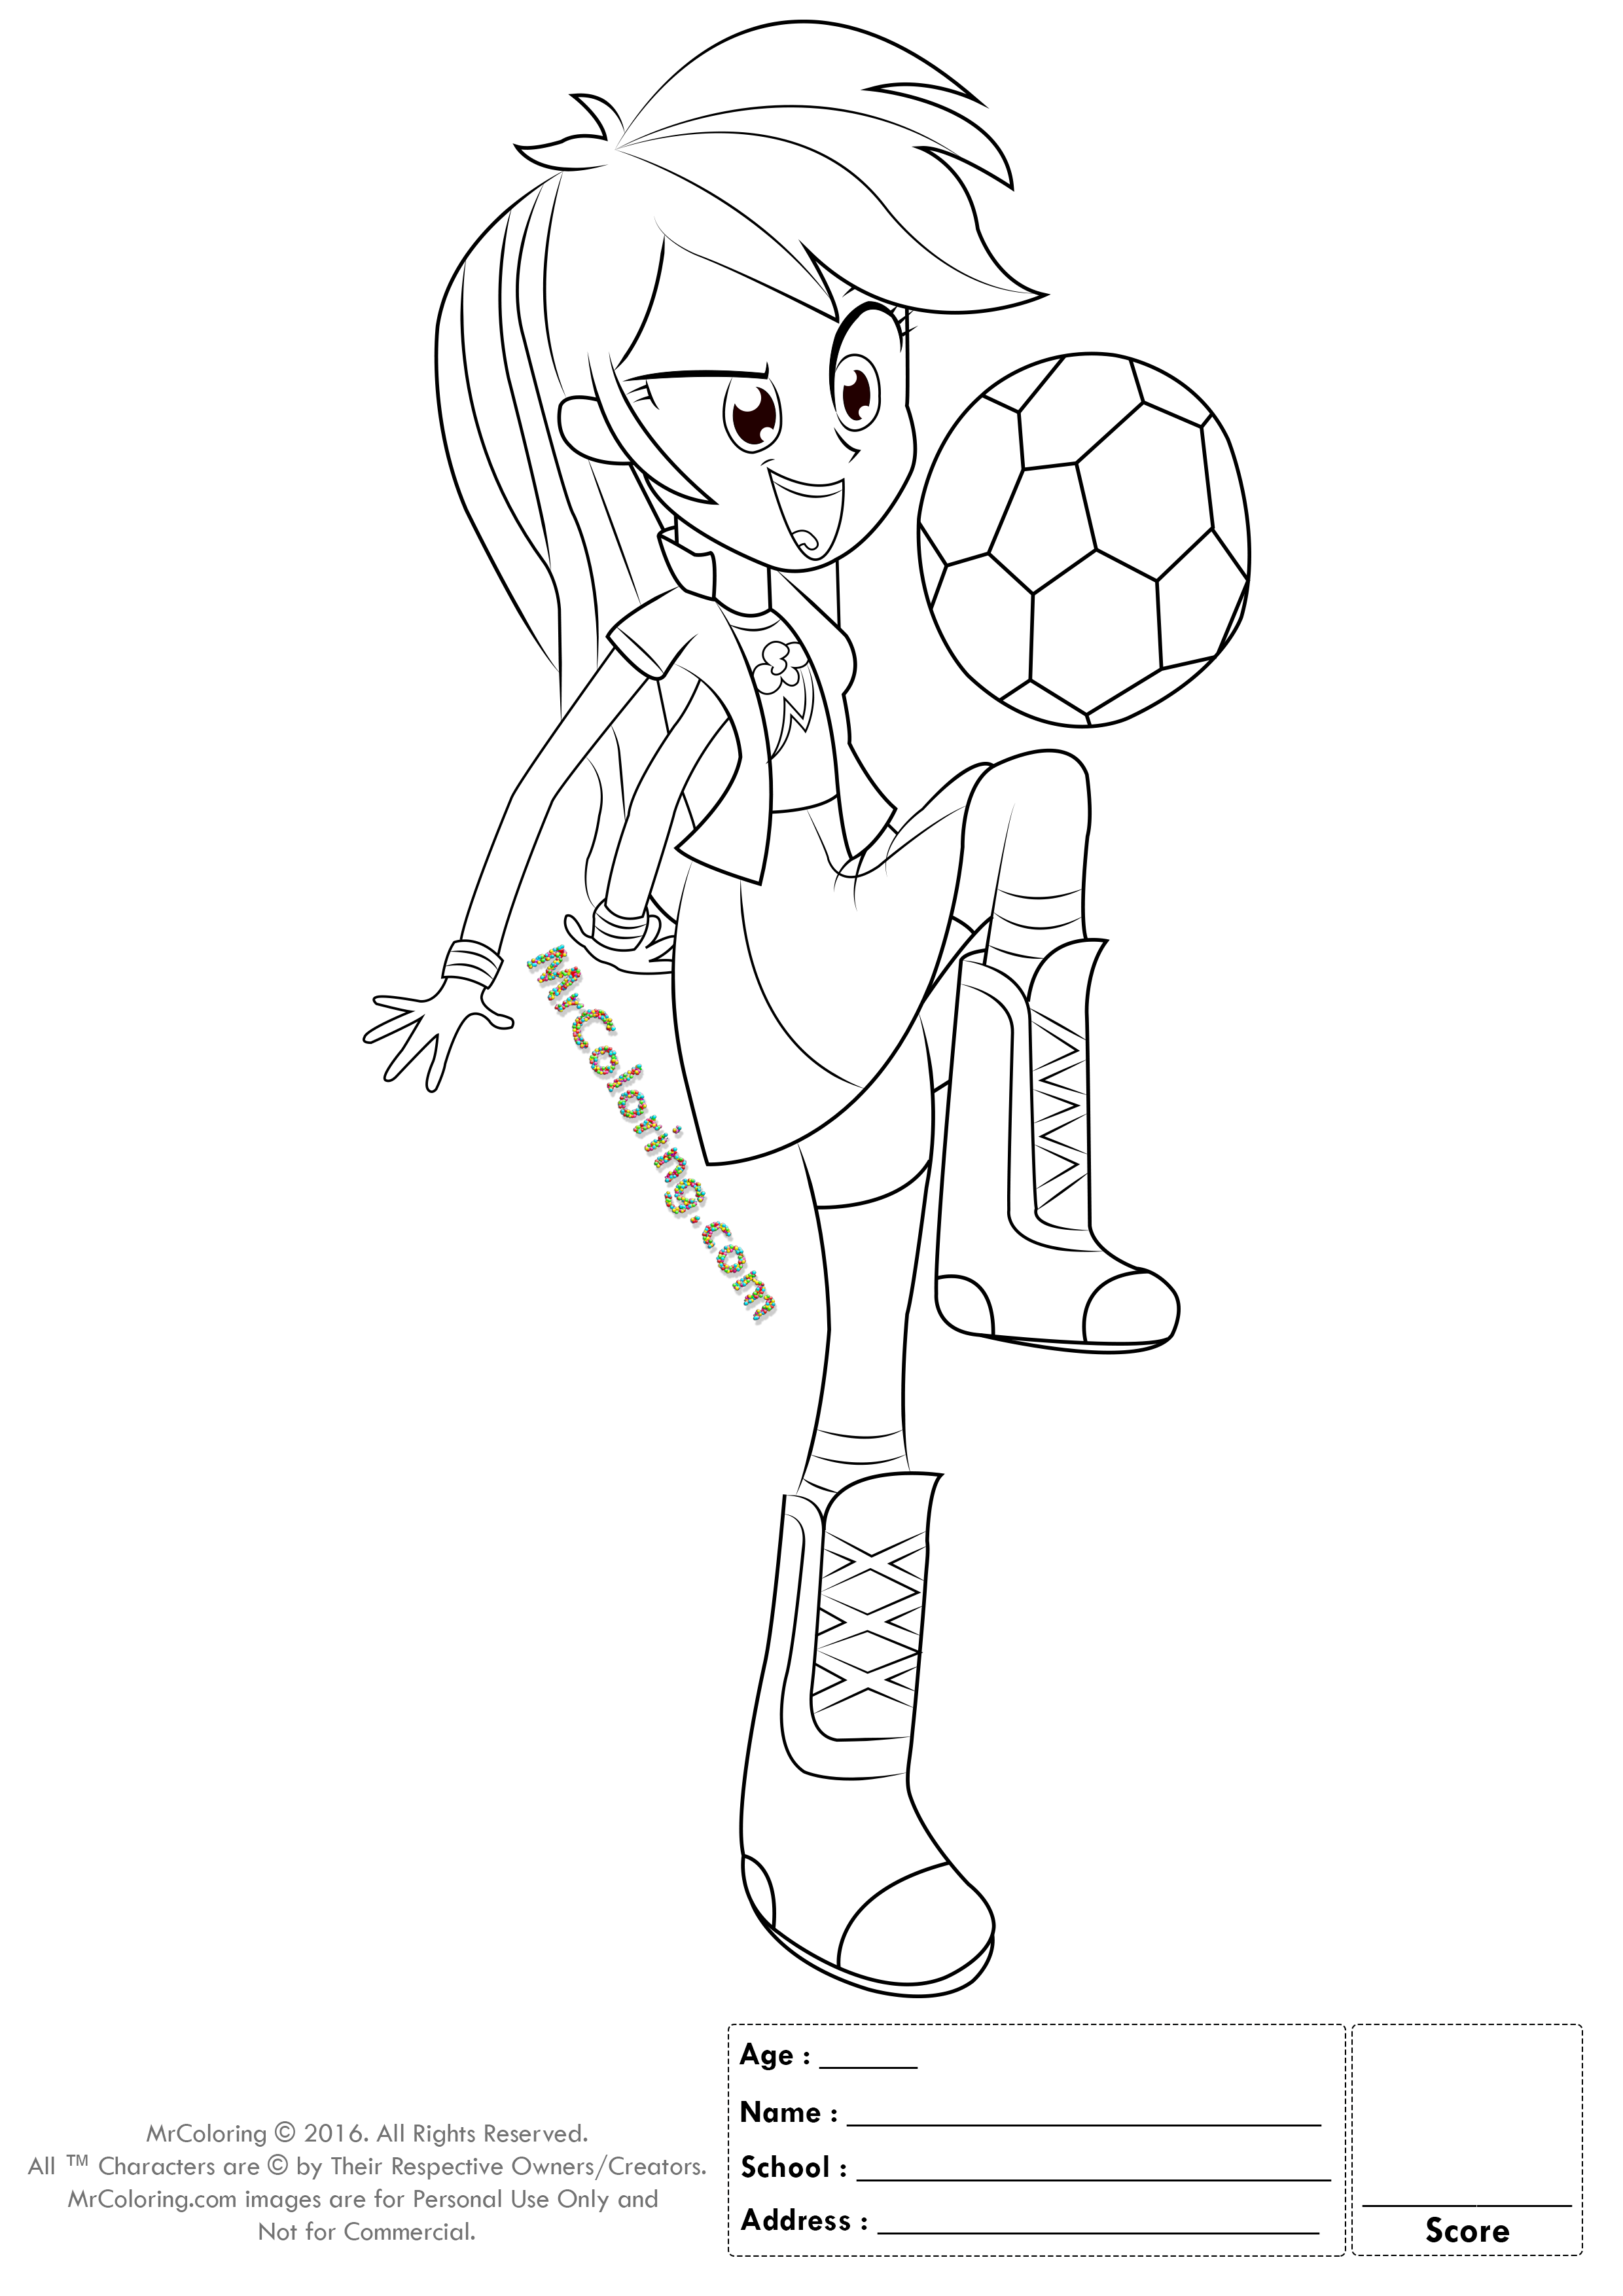 MLP Rainbow Dash Equestria Girls Coloring Pages - 4 | MrColoring.com